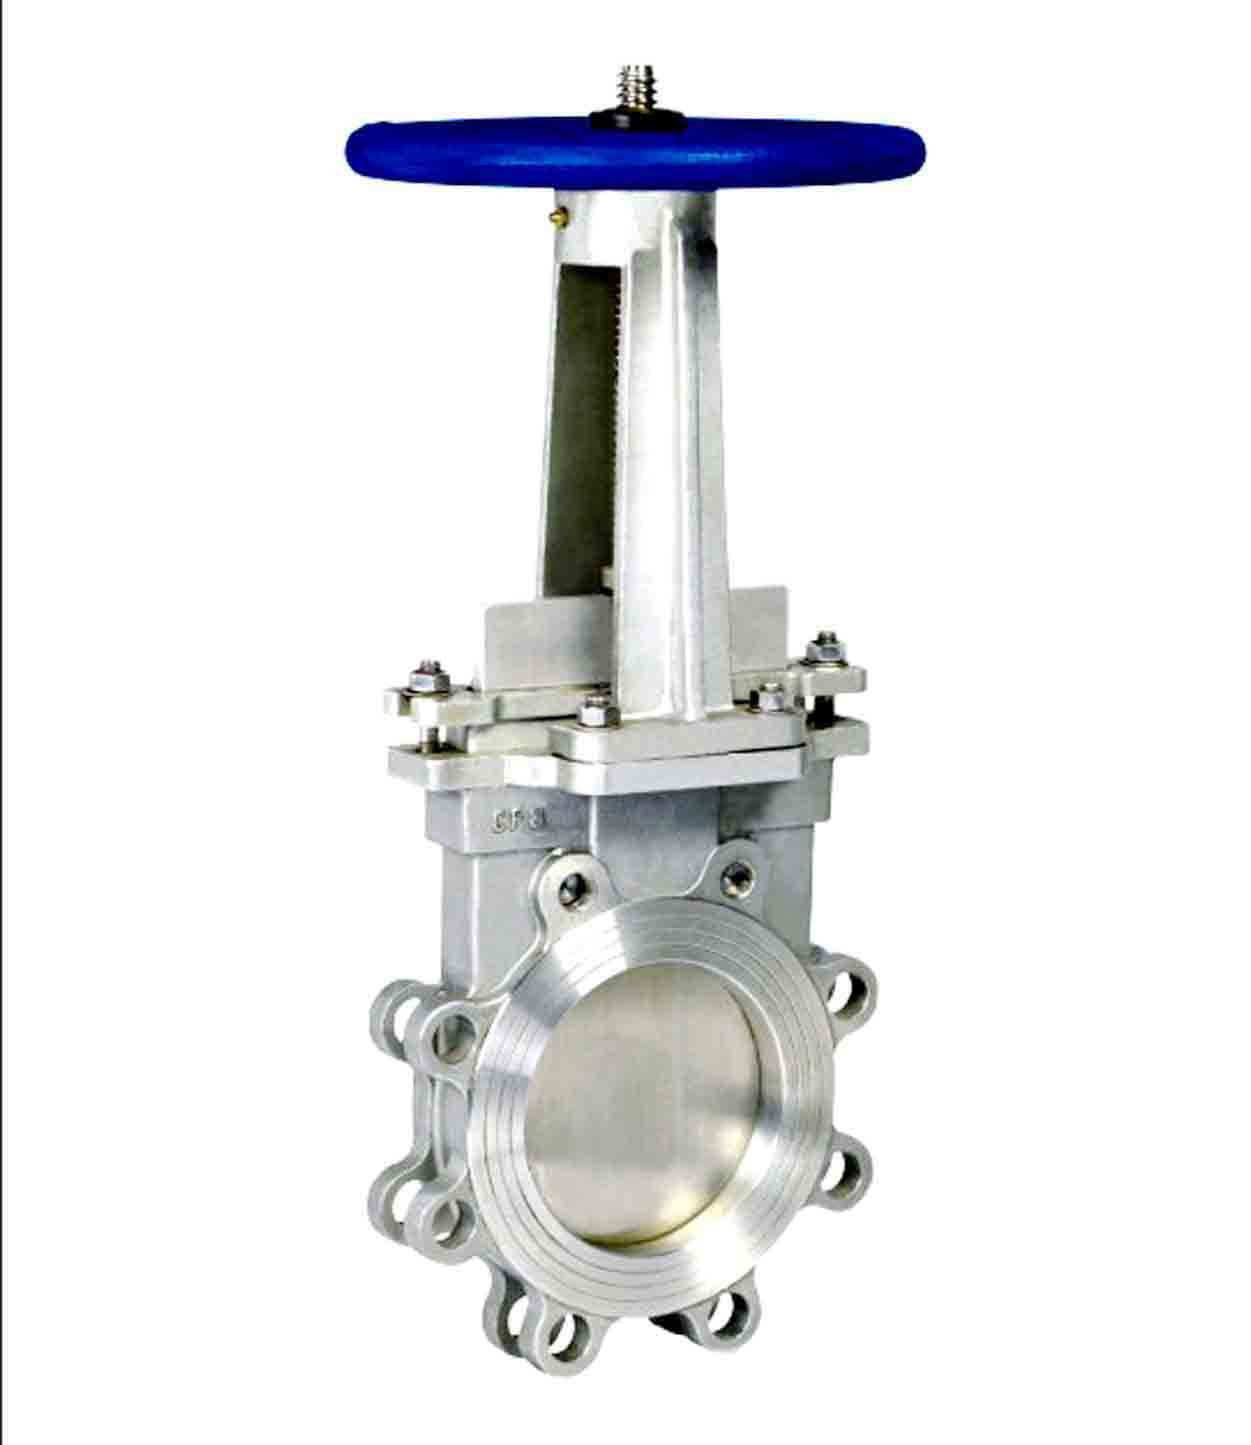 Rising & Non-Rising Stem Resilient Seated Flange Knife Gate Valve